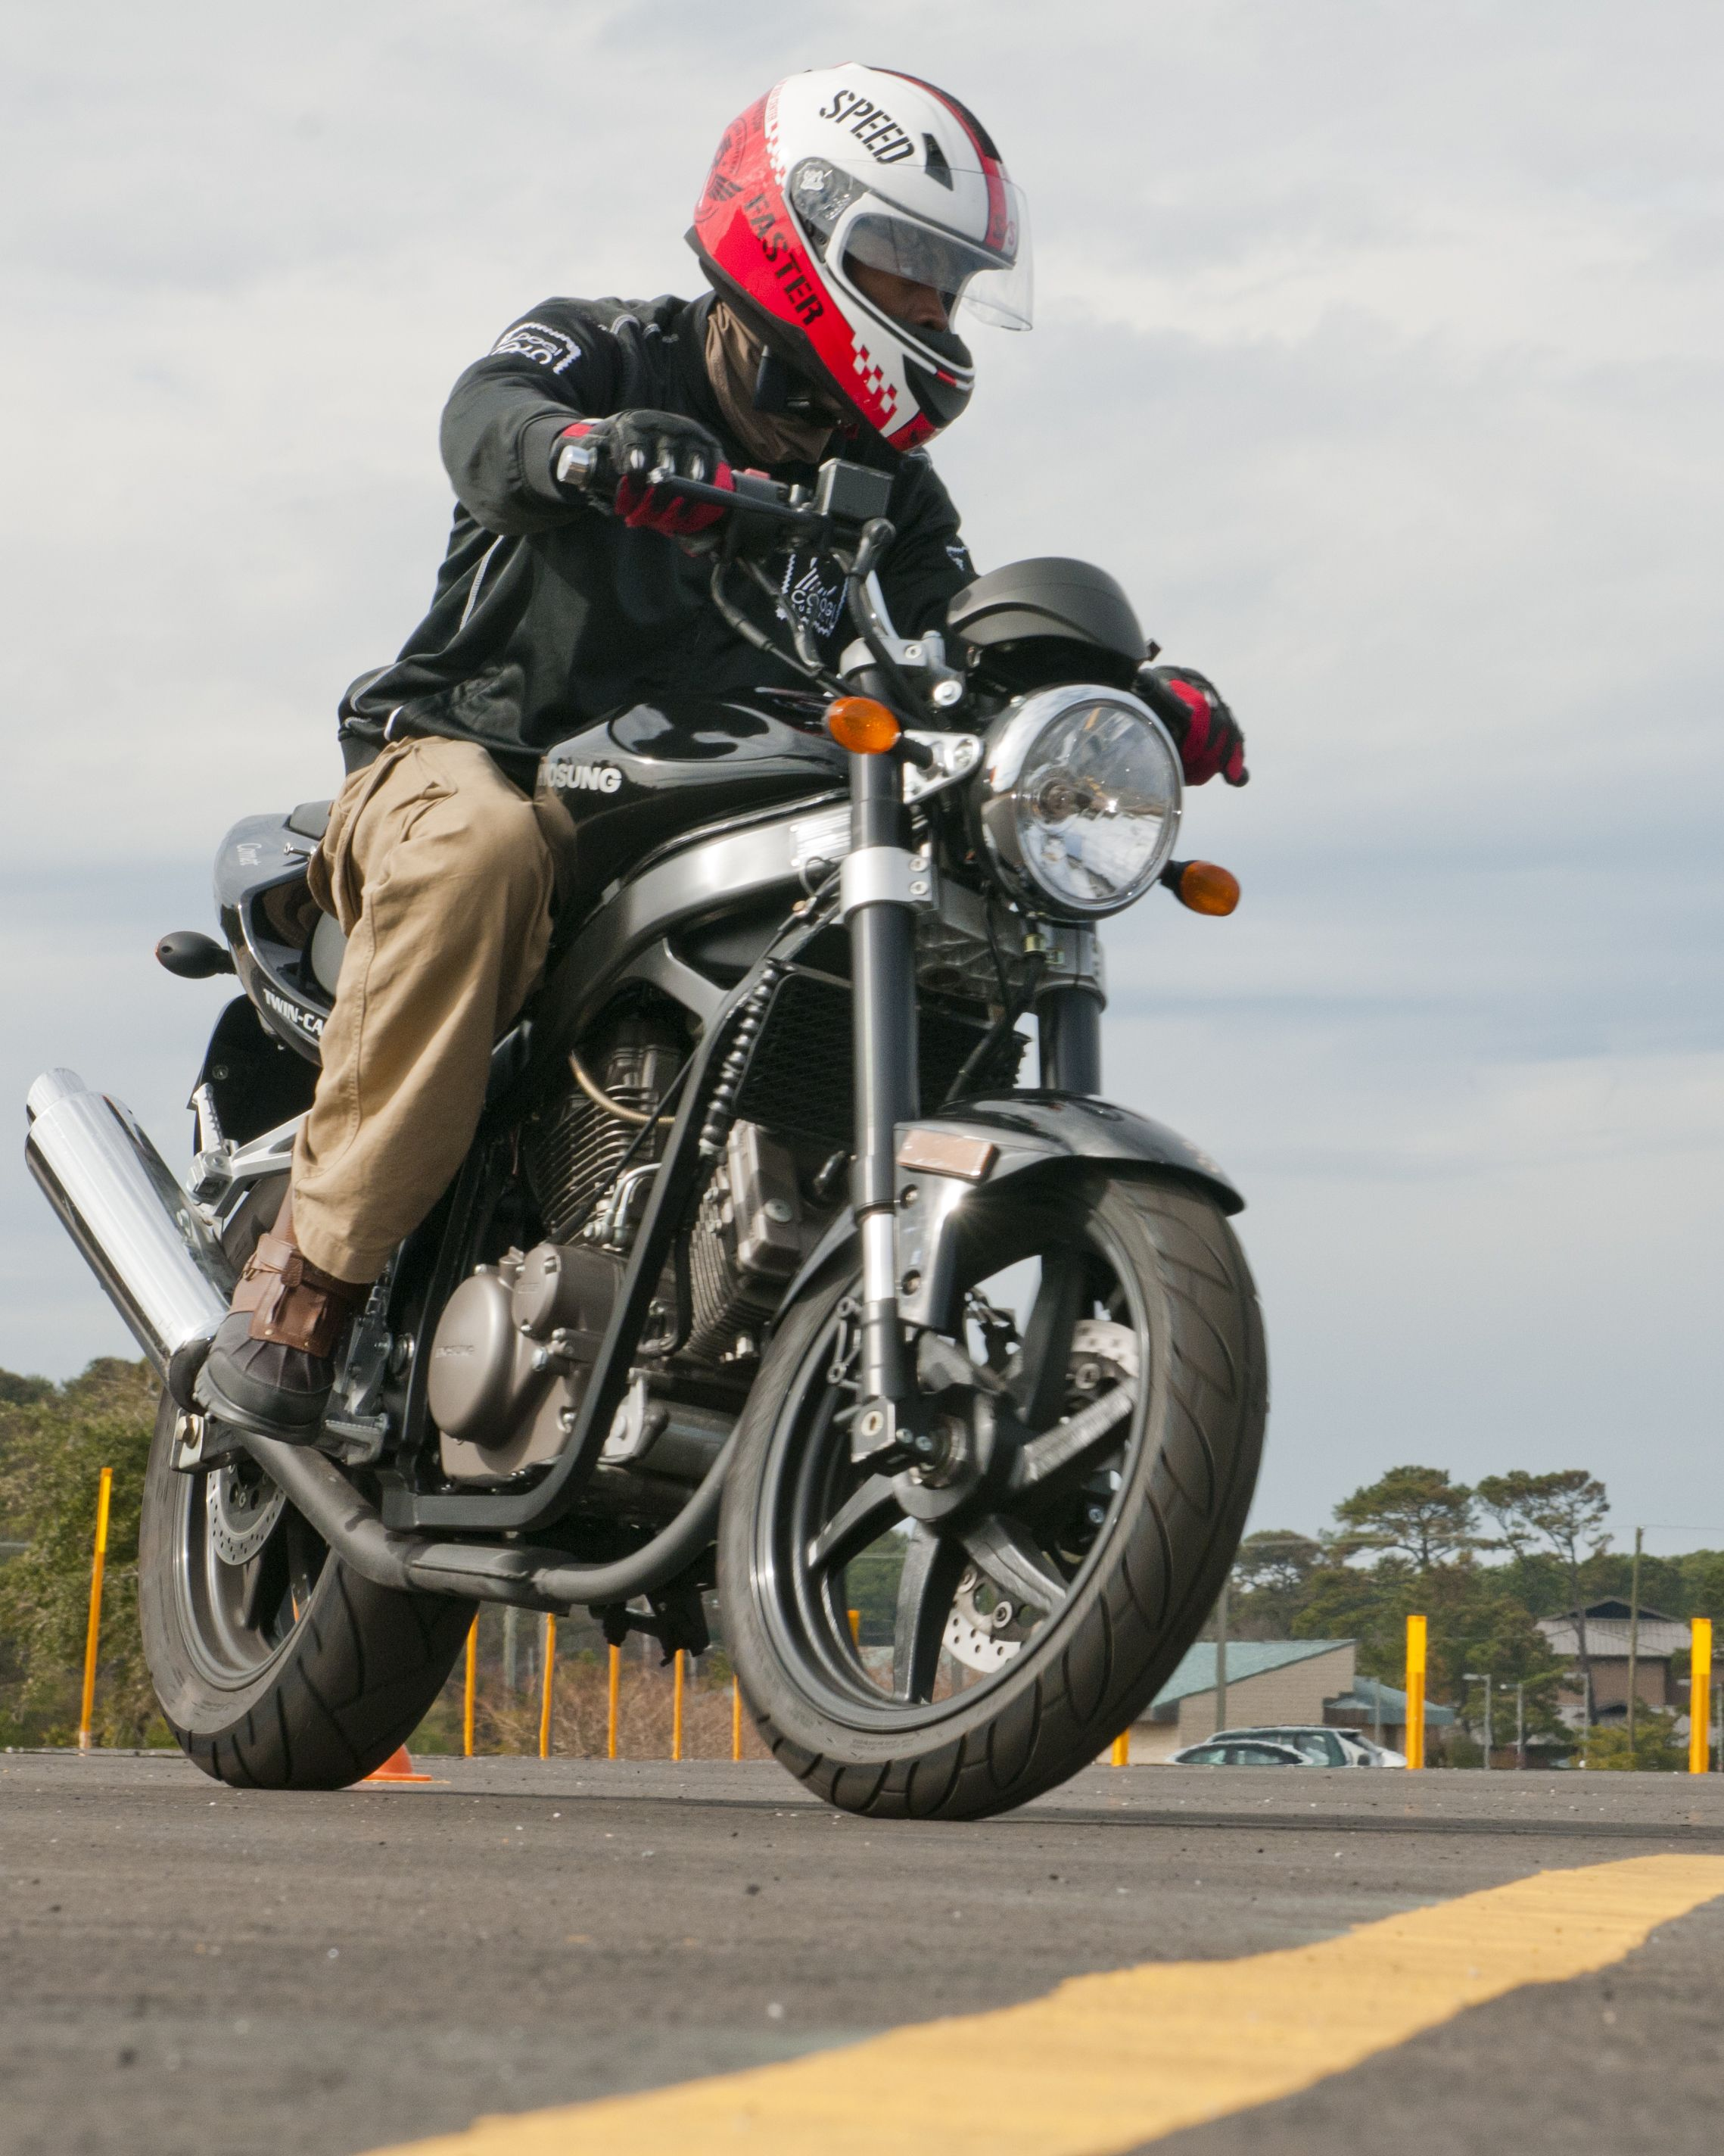 A great way for motorcyclists to be safe is to wear bright